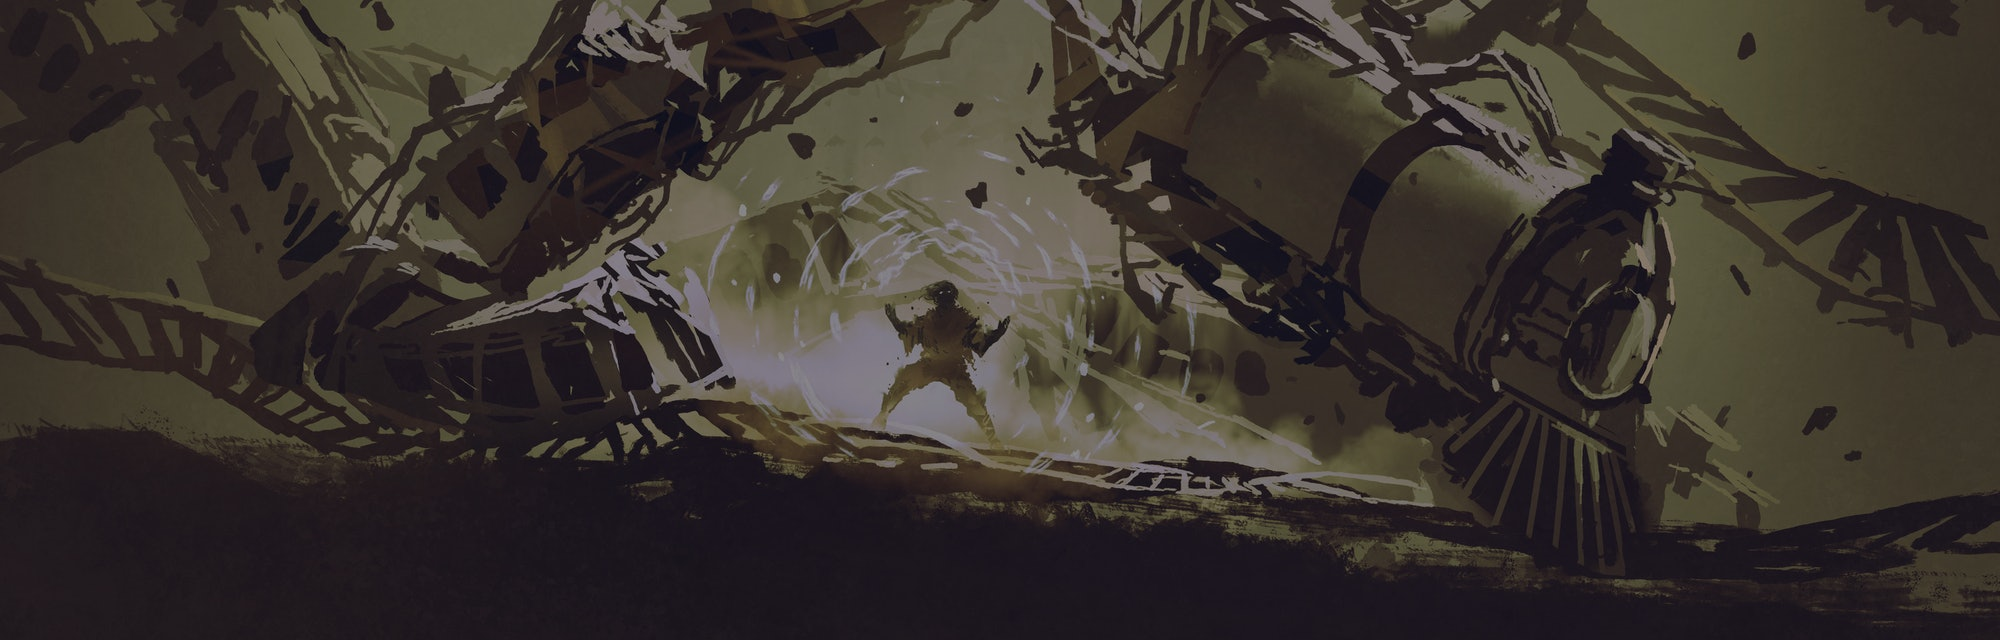 the man powering up his energy to destroy the train, digital art style, illustration painting